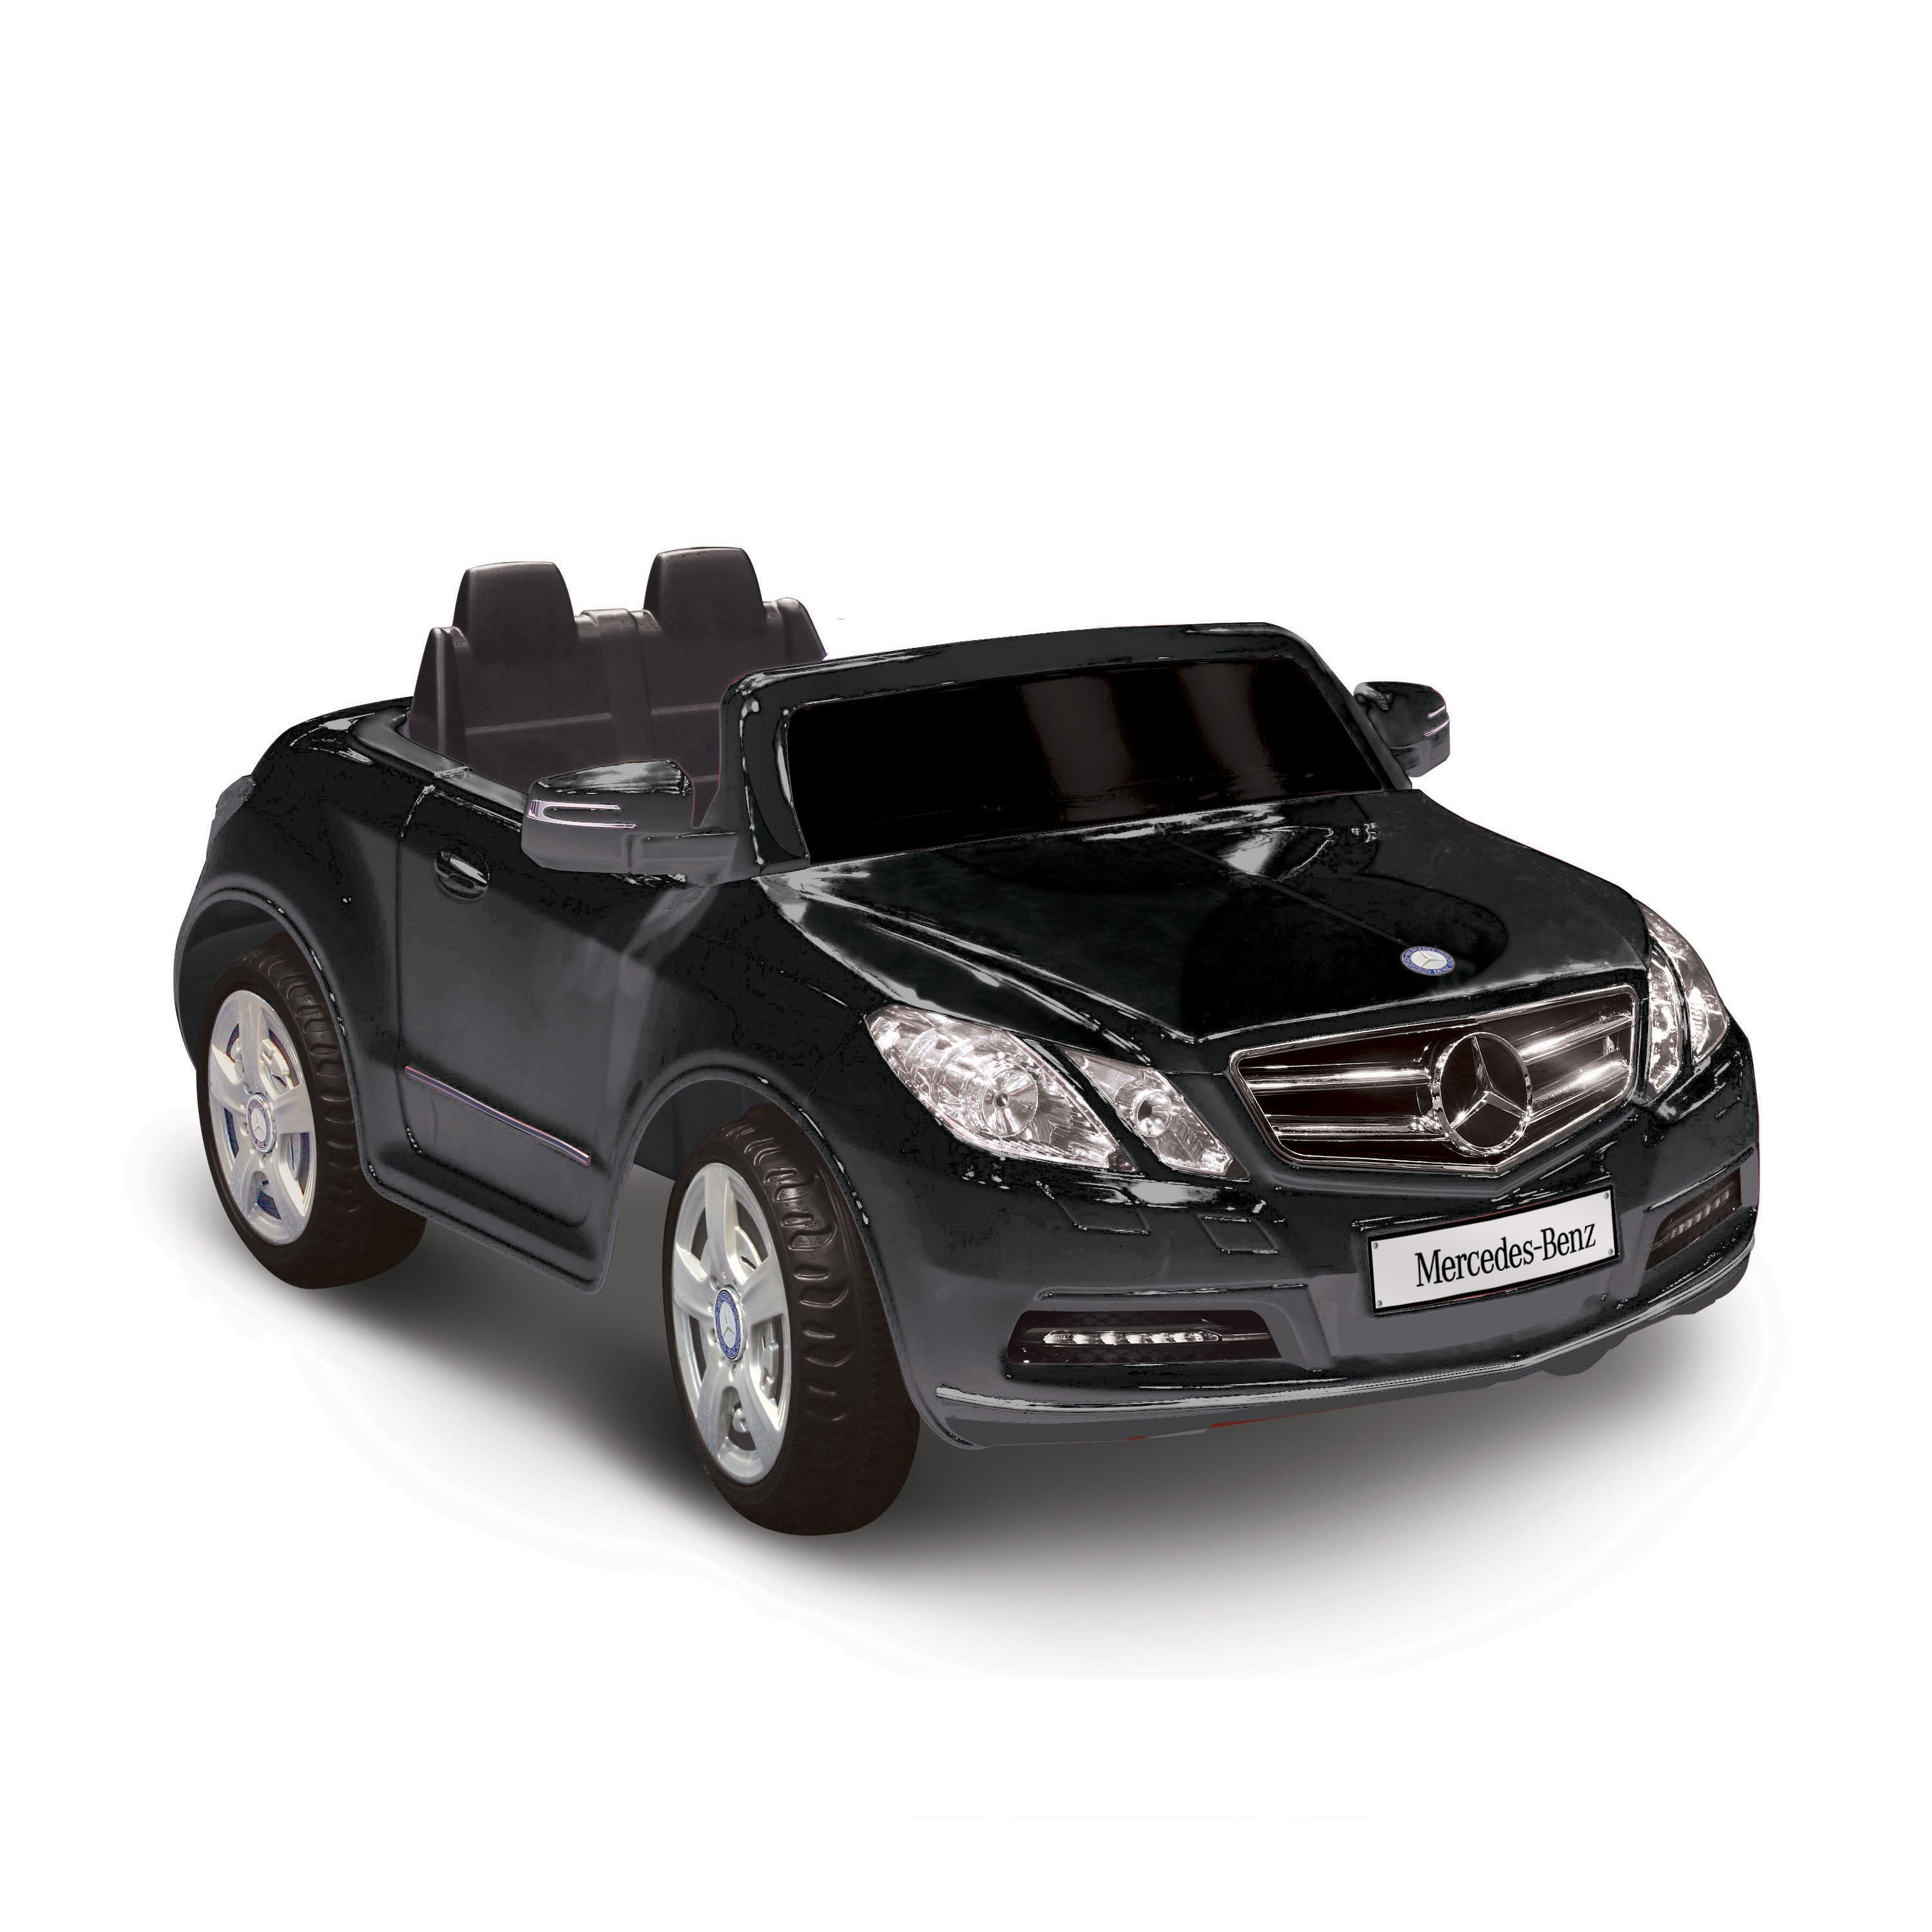 NATIONAL PRODUCTS LTD. Mercedes Benz E550 Black 1-seater ...